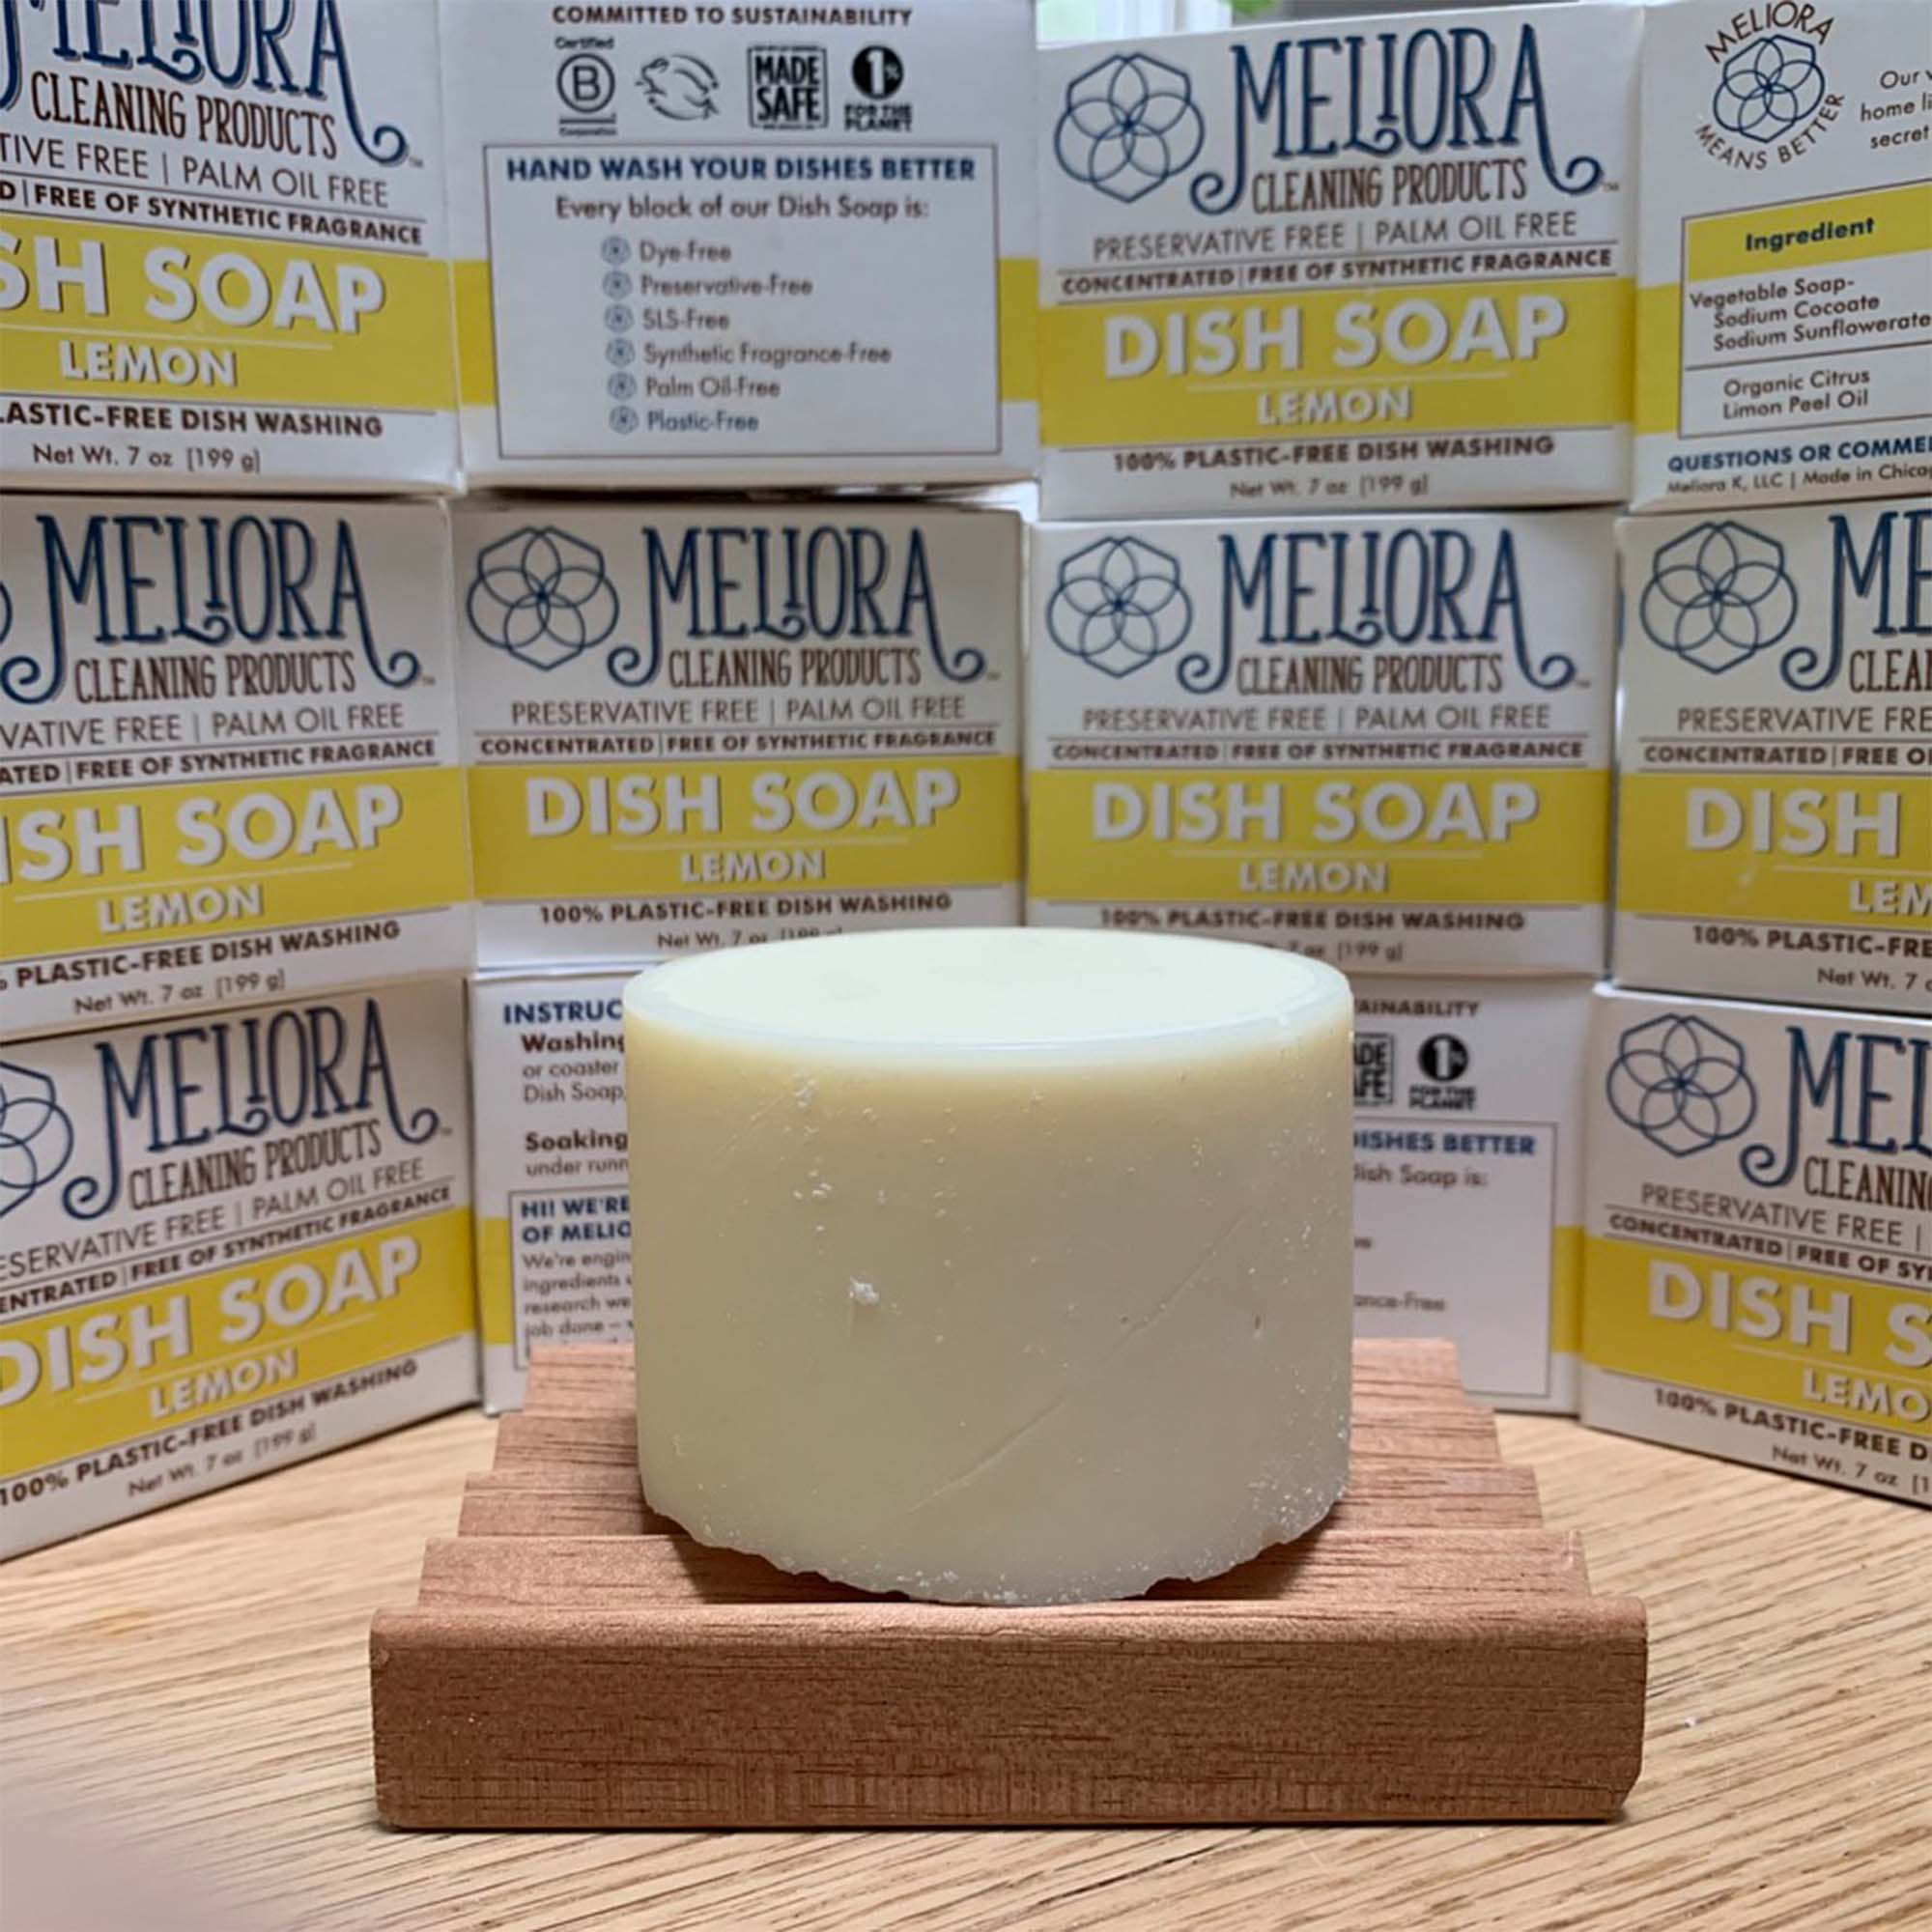 7 oz dish soap cylinder on wood table top, surrounded by meliora dish soap packages